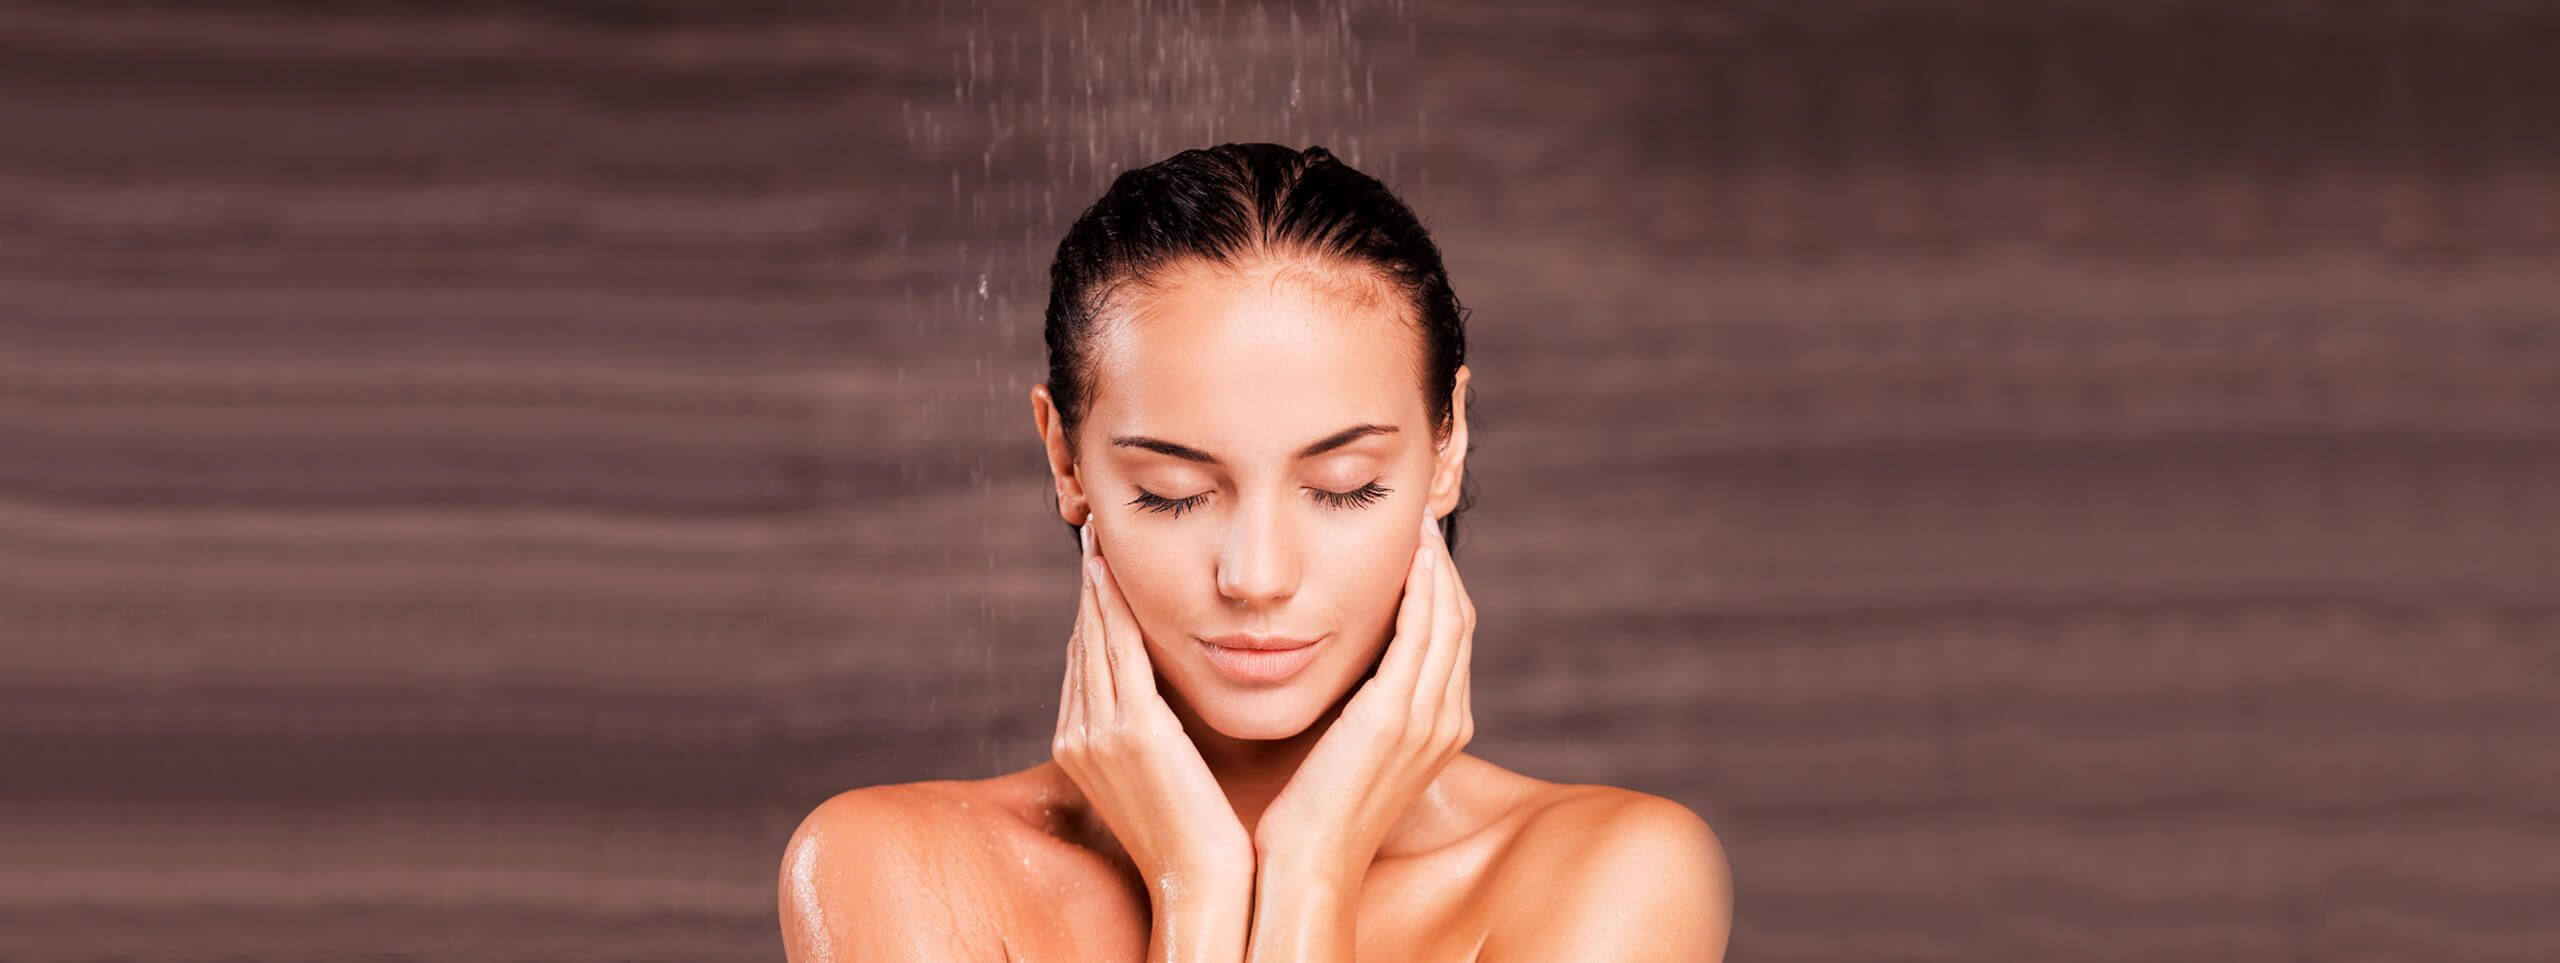 Woman in the shower with wet hairstyle